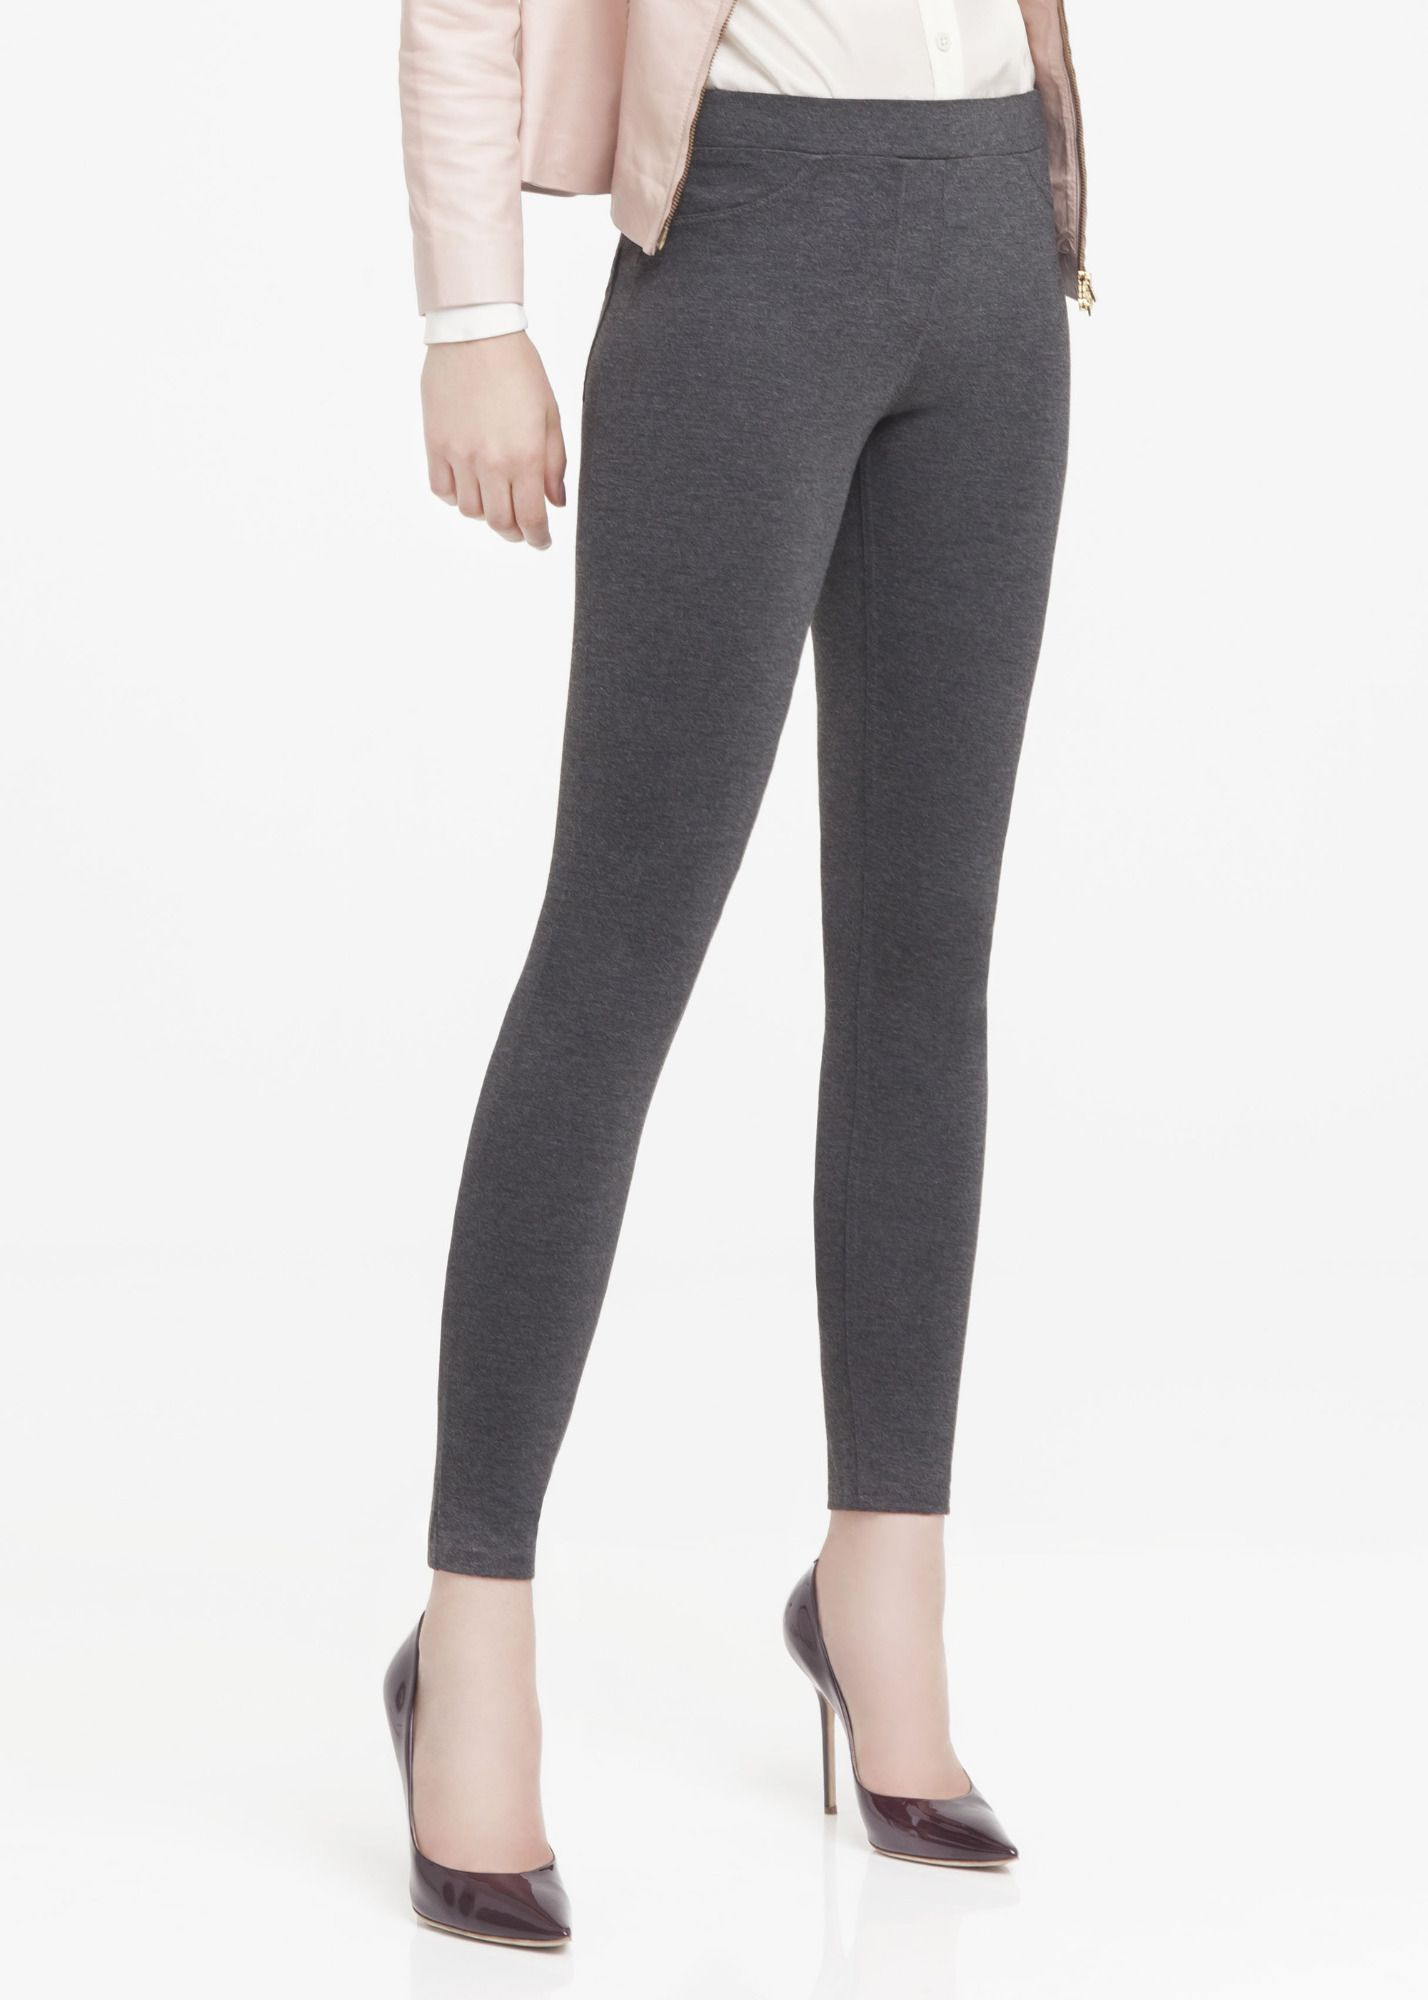 ESSENCE LEGGINGS Philippe Matignon